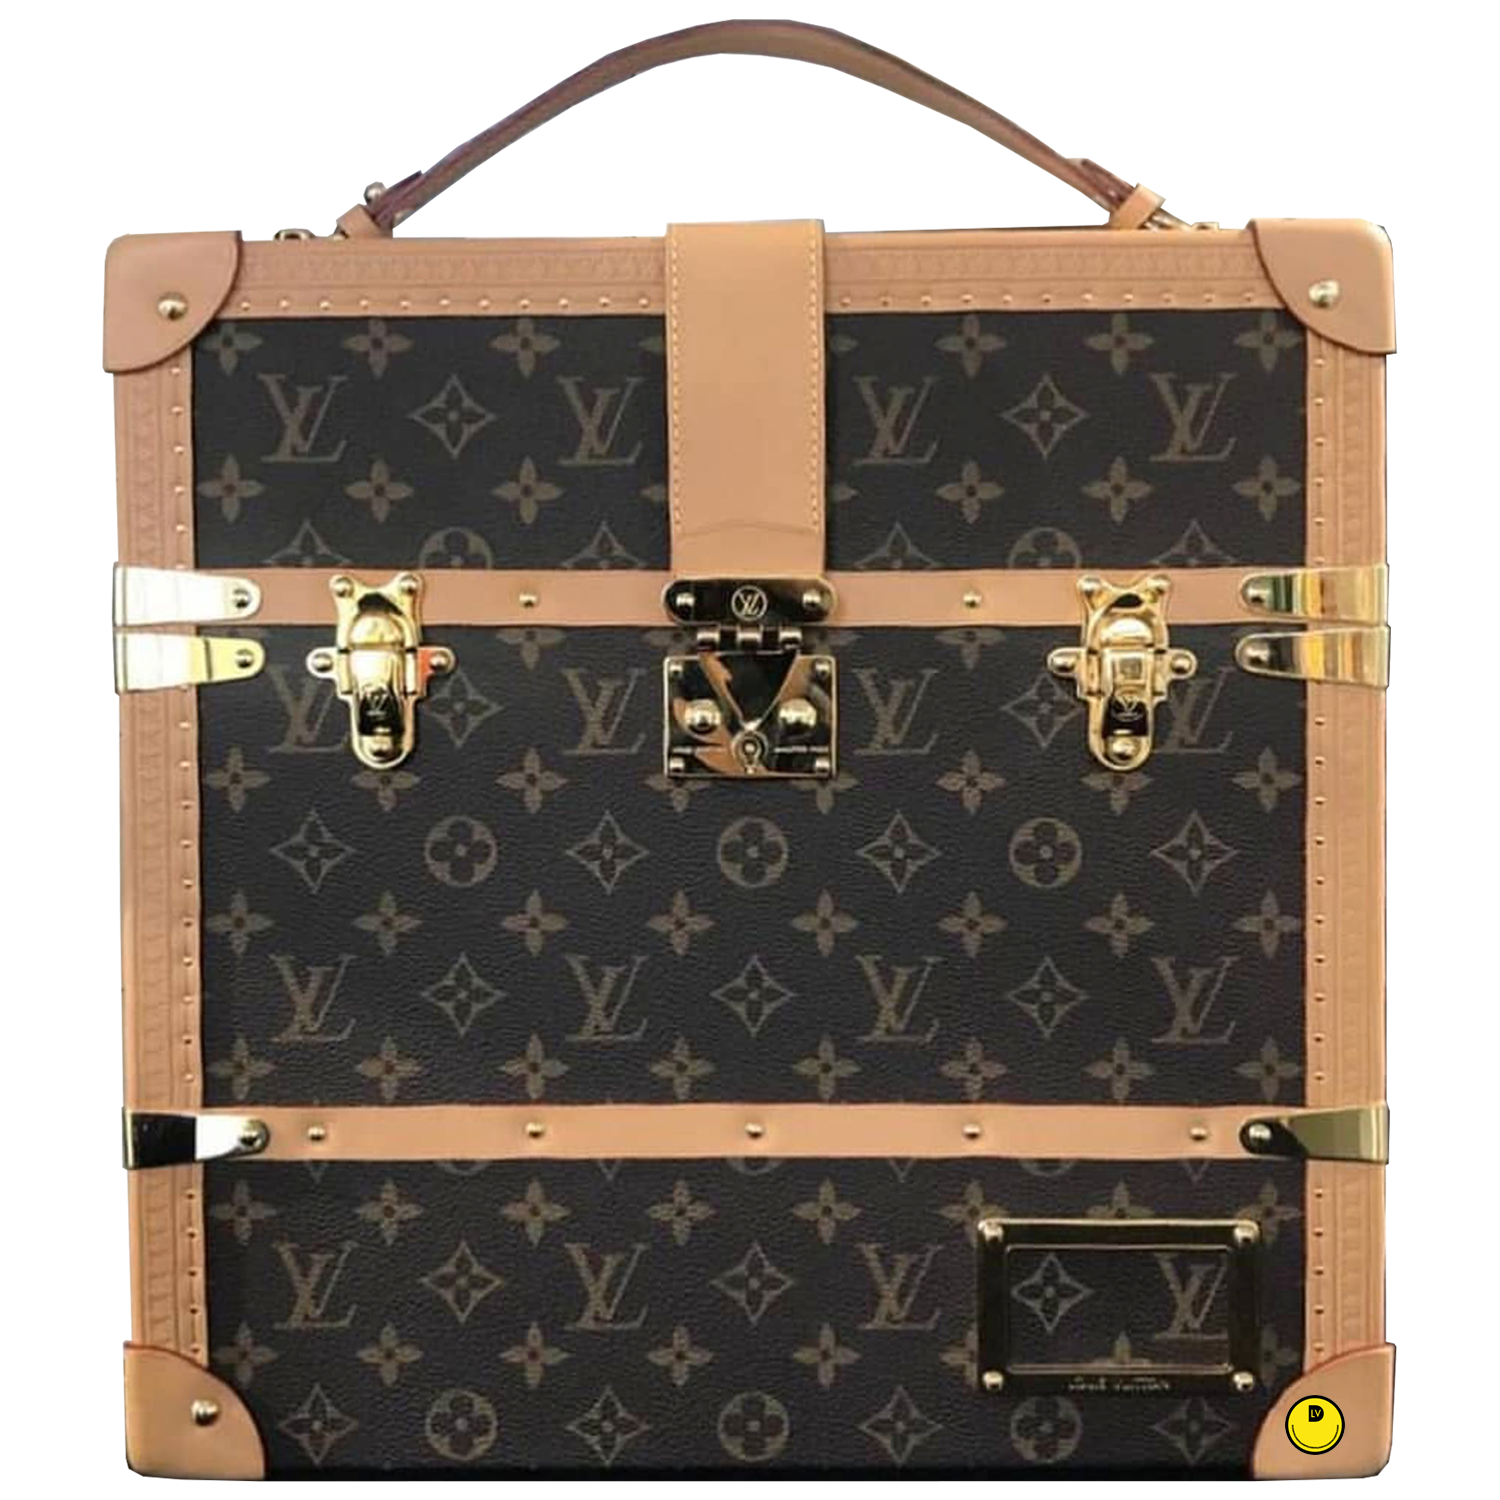 LAPTOP TRUNK - € $27,000M20176MONOGRAM